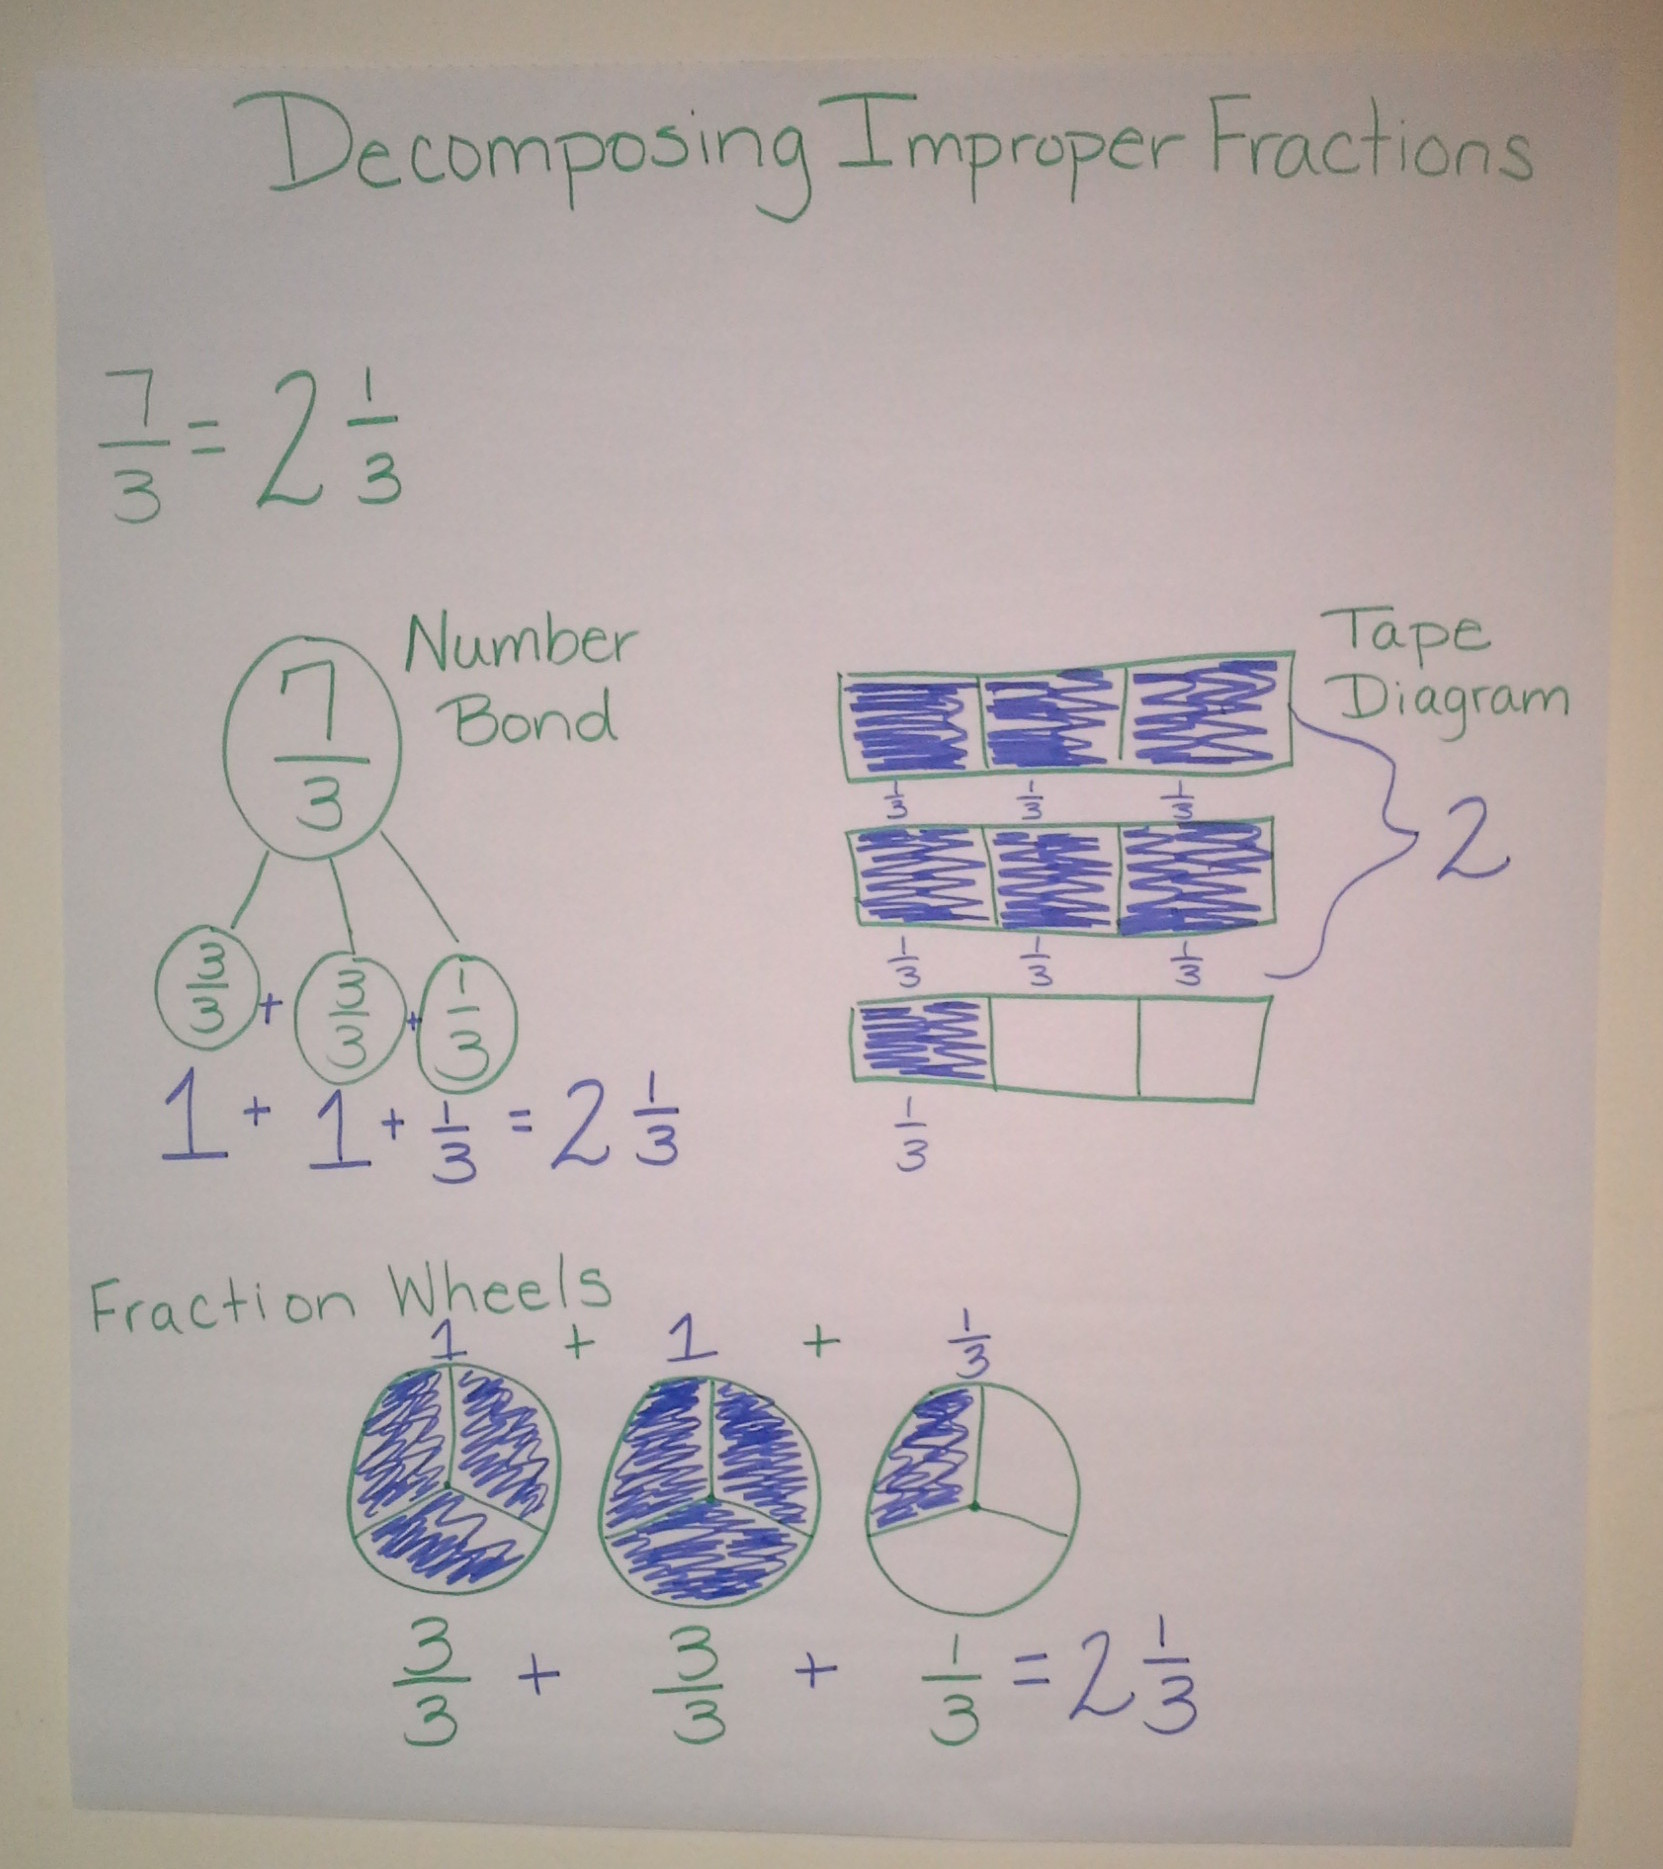 Decomposing fractions the role of the denominator ignited decomposing improper fractions ccuart Choice Image